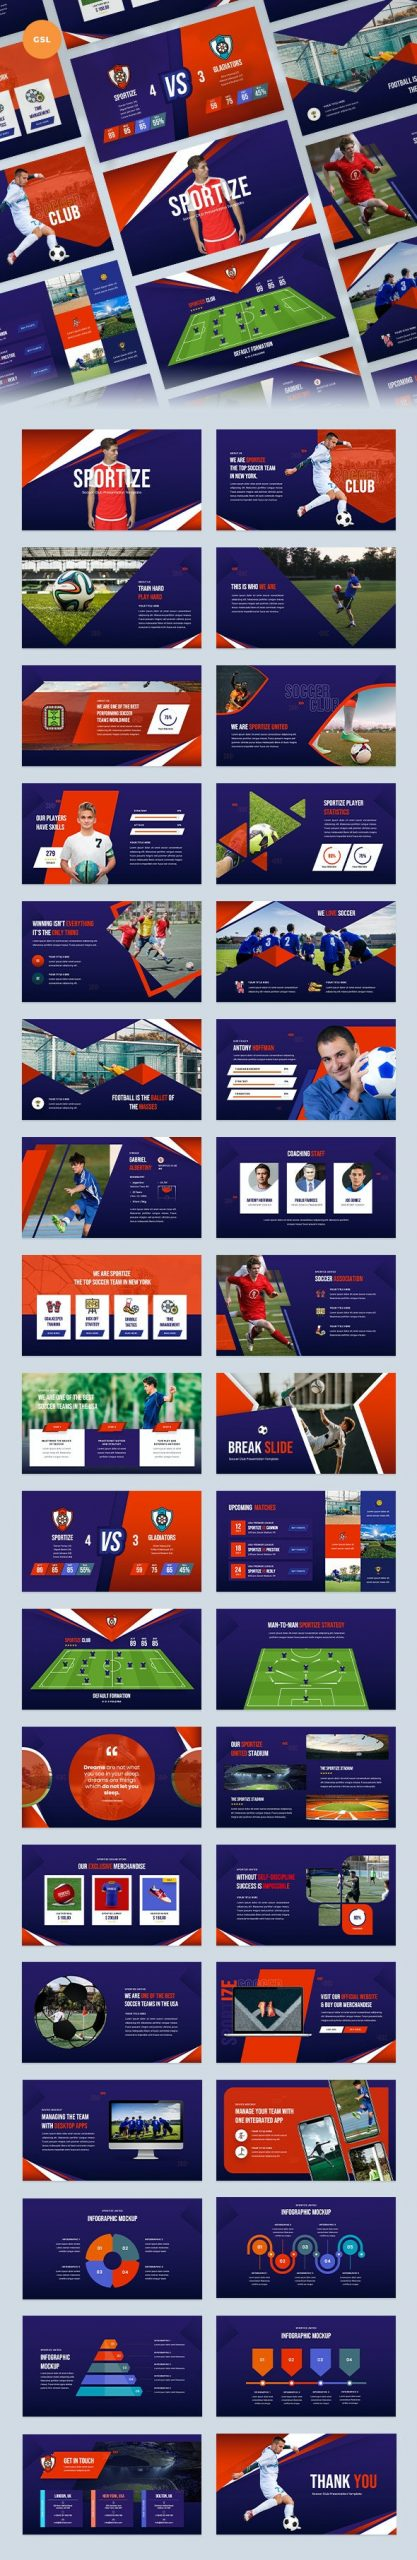 Soccer Player Profiles Template